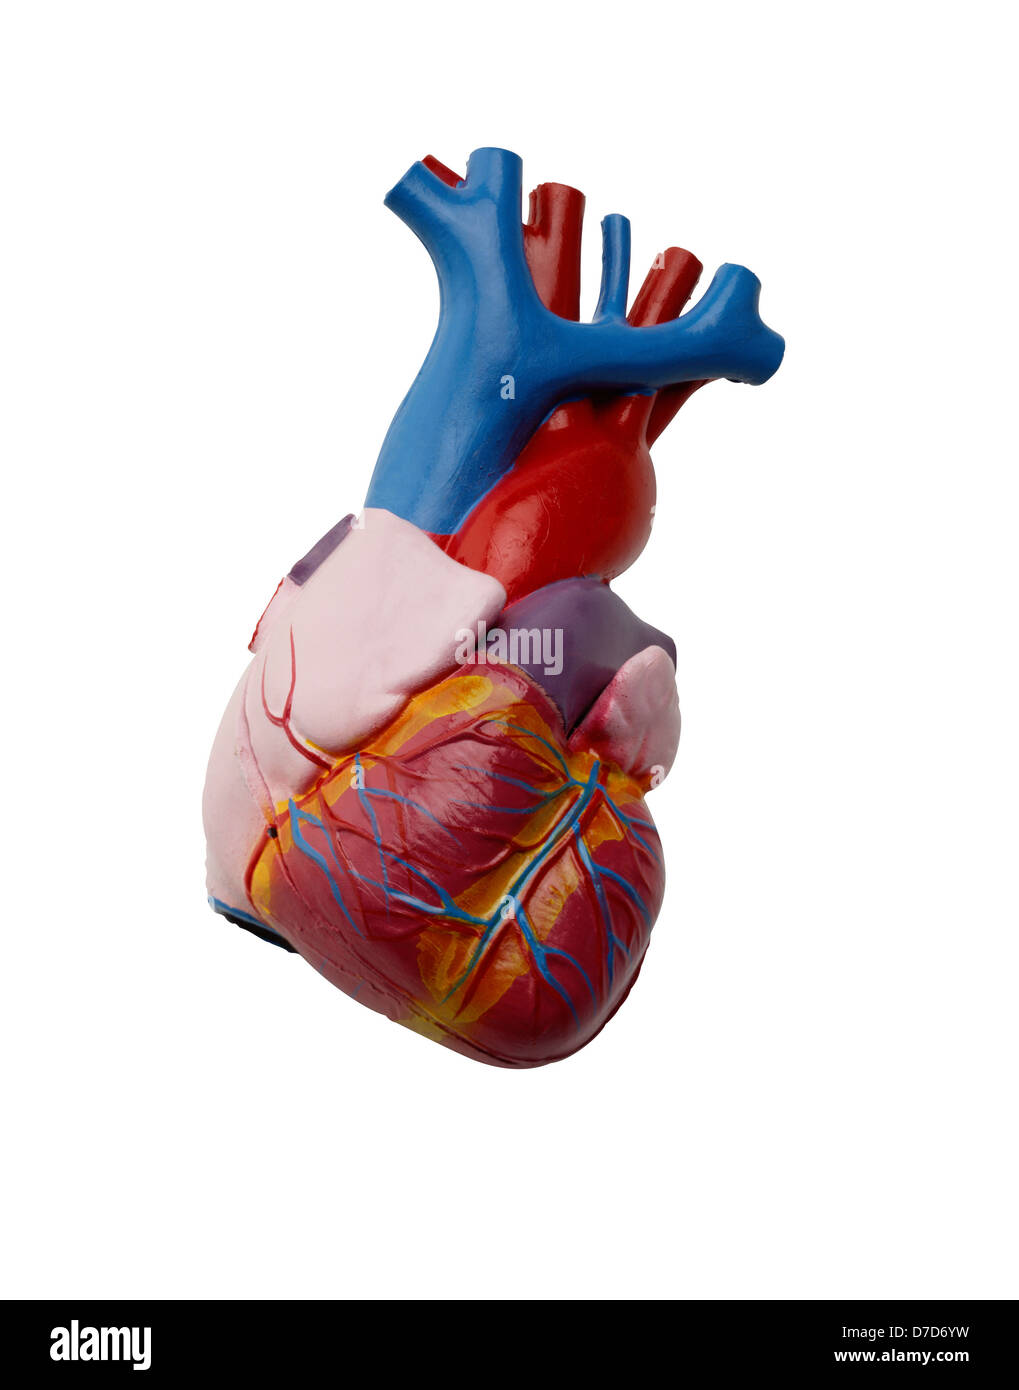 Plastic Anatomical Model Of Human Heart On White Stock Photo